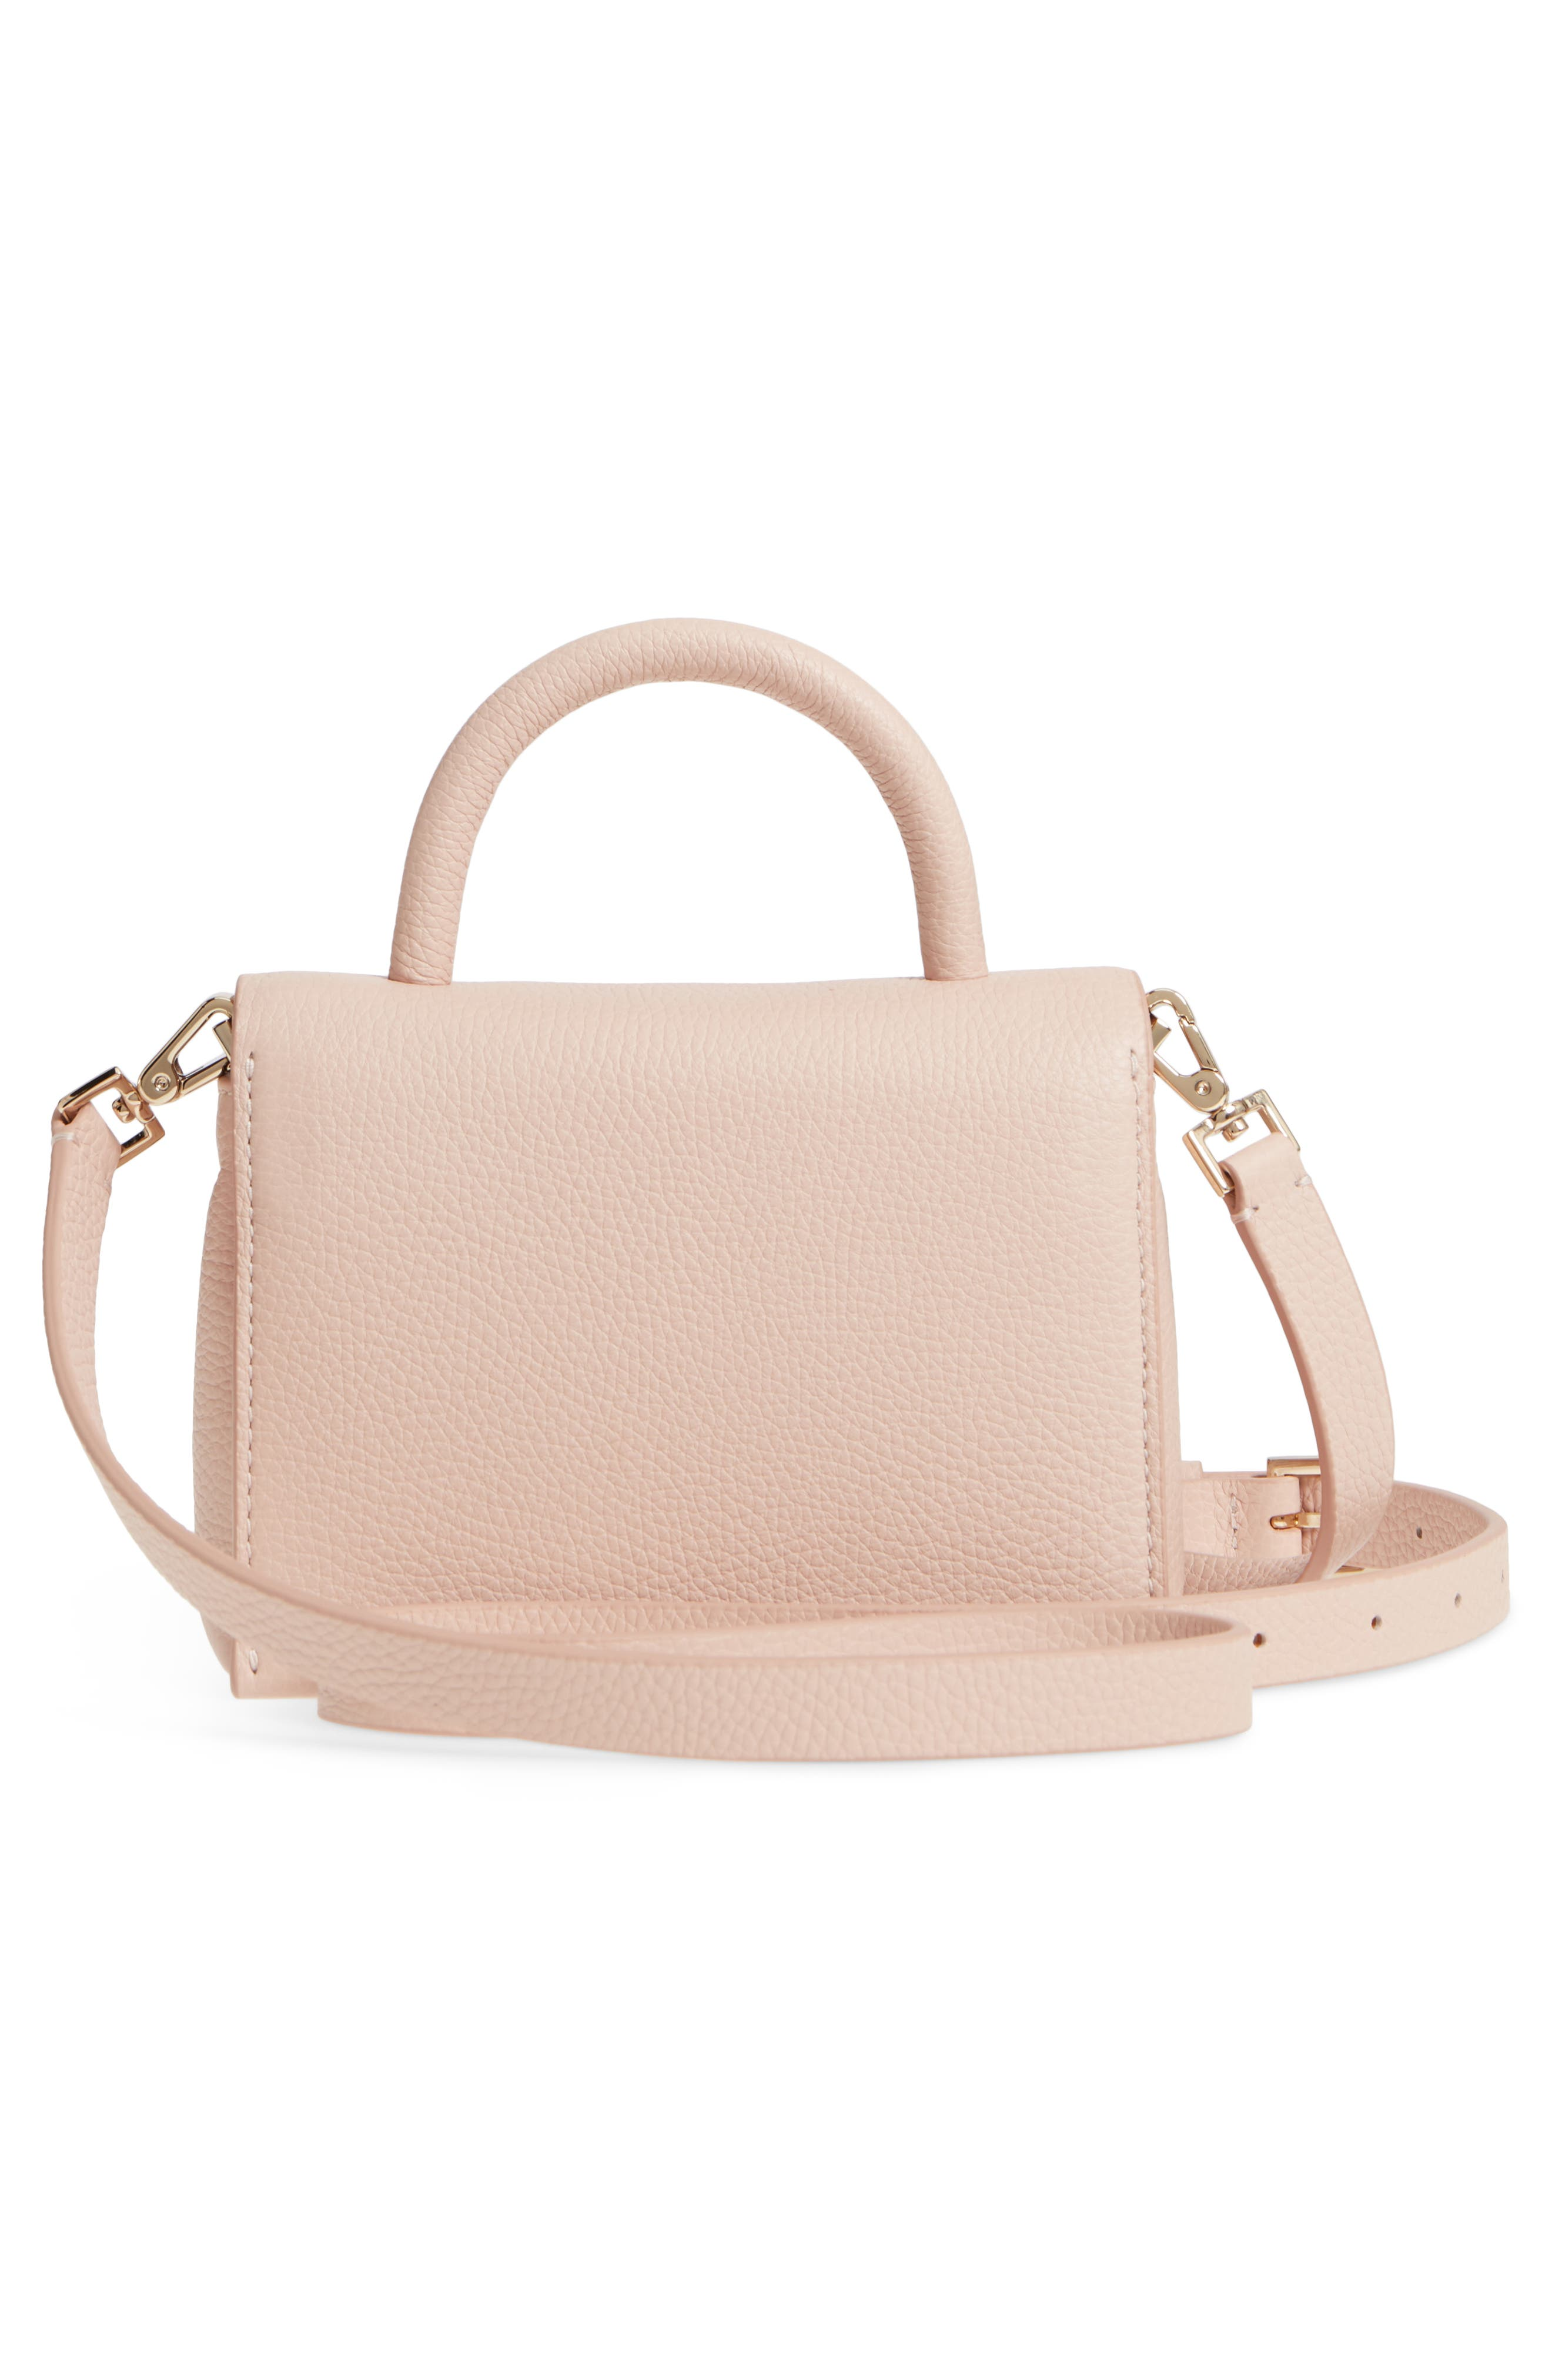 madison knollwood drive - hope leather crossbody bag,                             Alternate thumbnail 3, color,                             Dolce